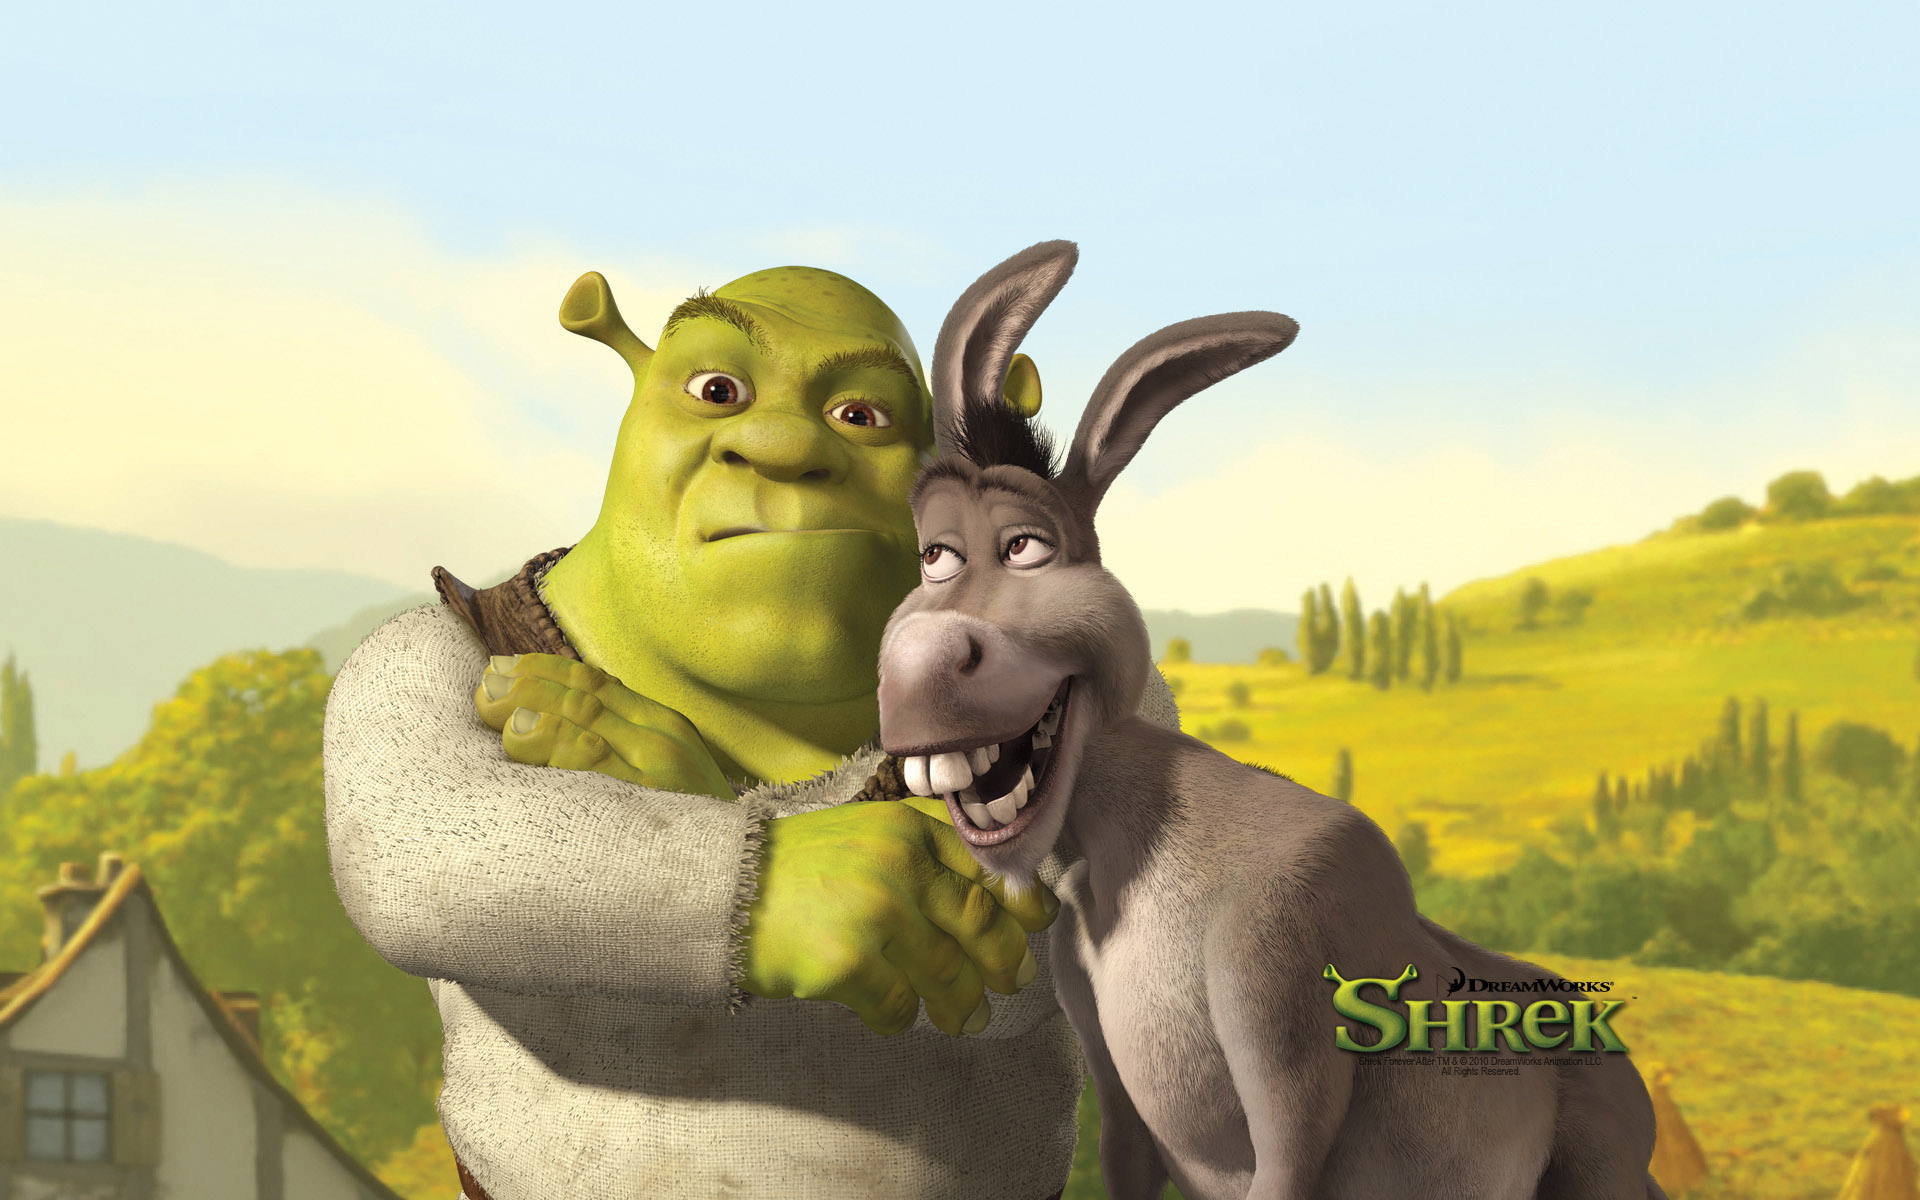 Funny Shrek And Donkey Desktop Wallpaper 64269 1920x1200px